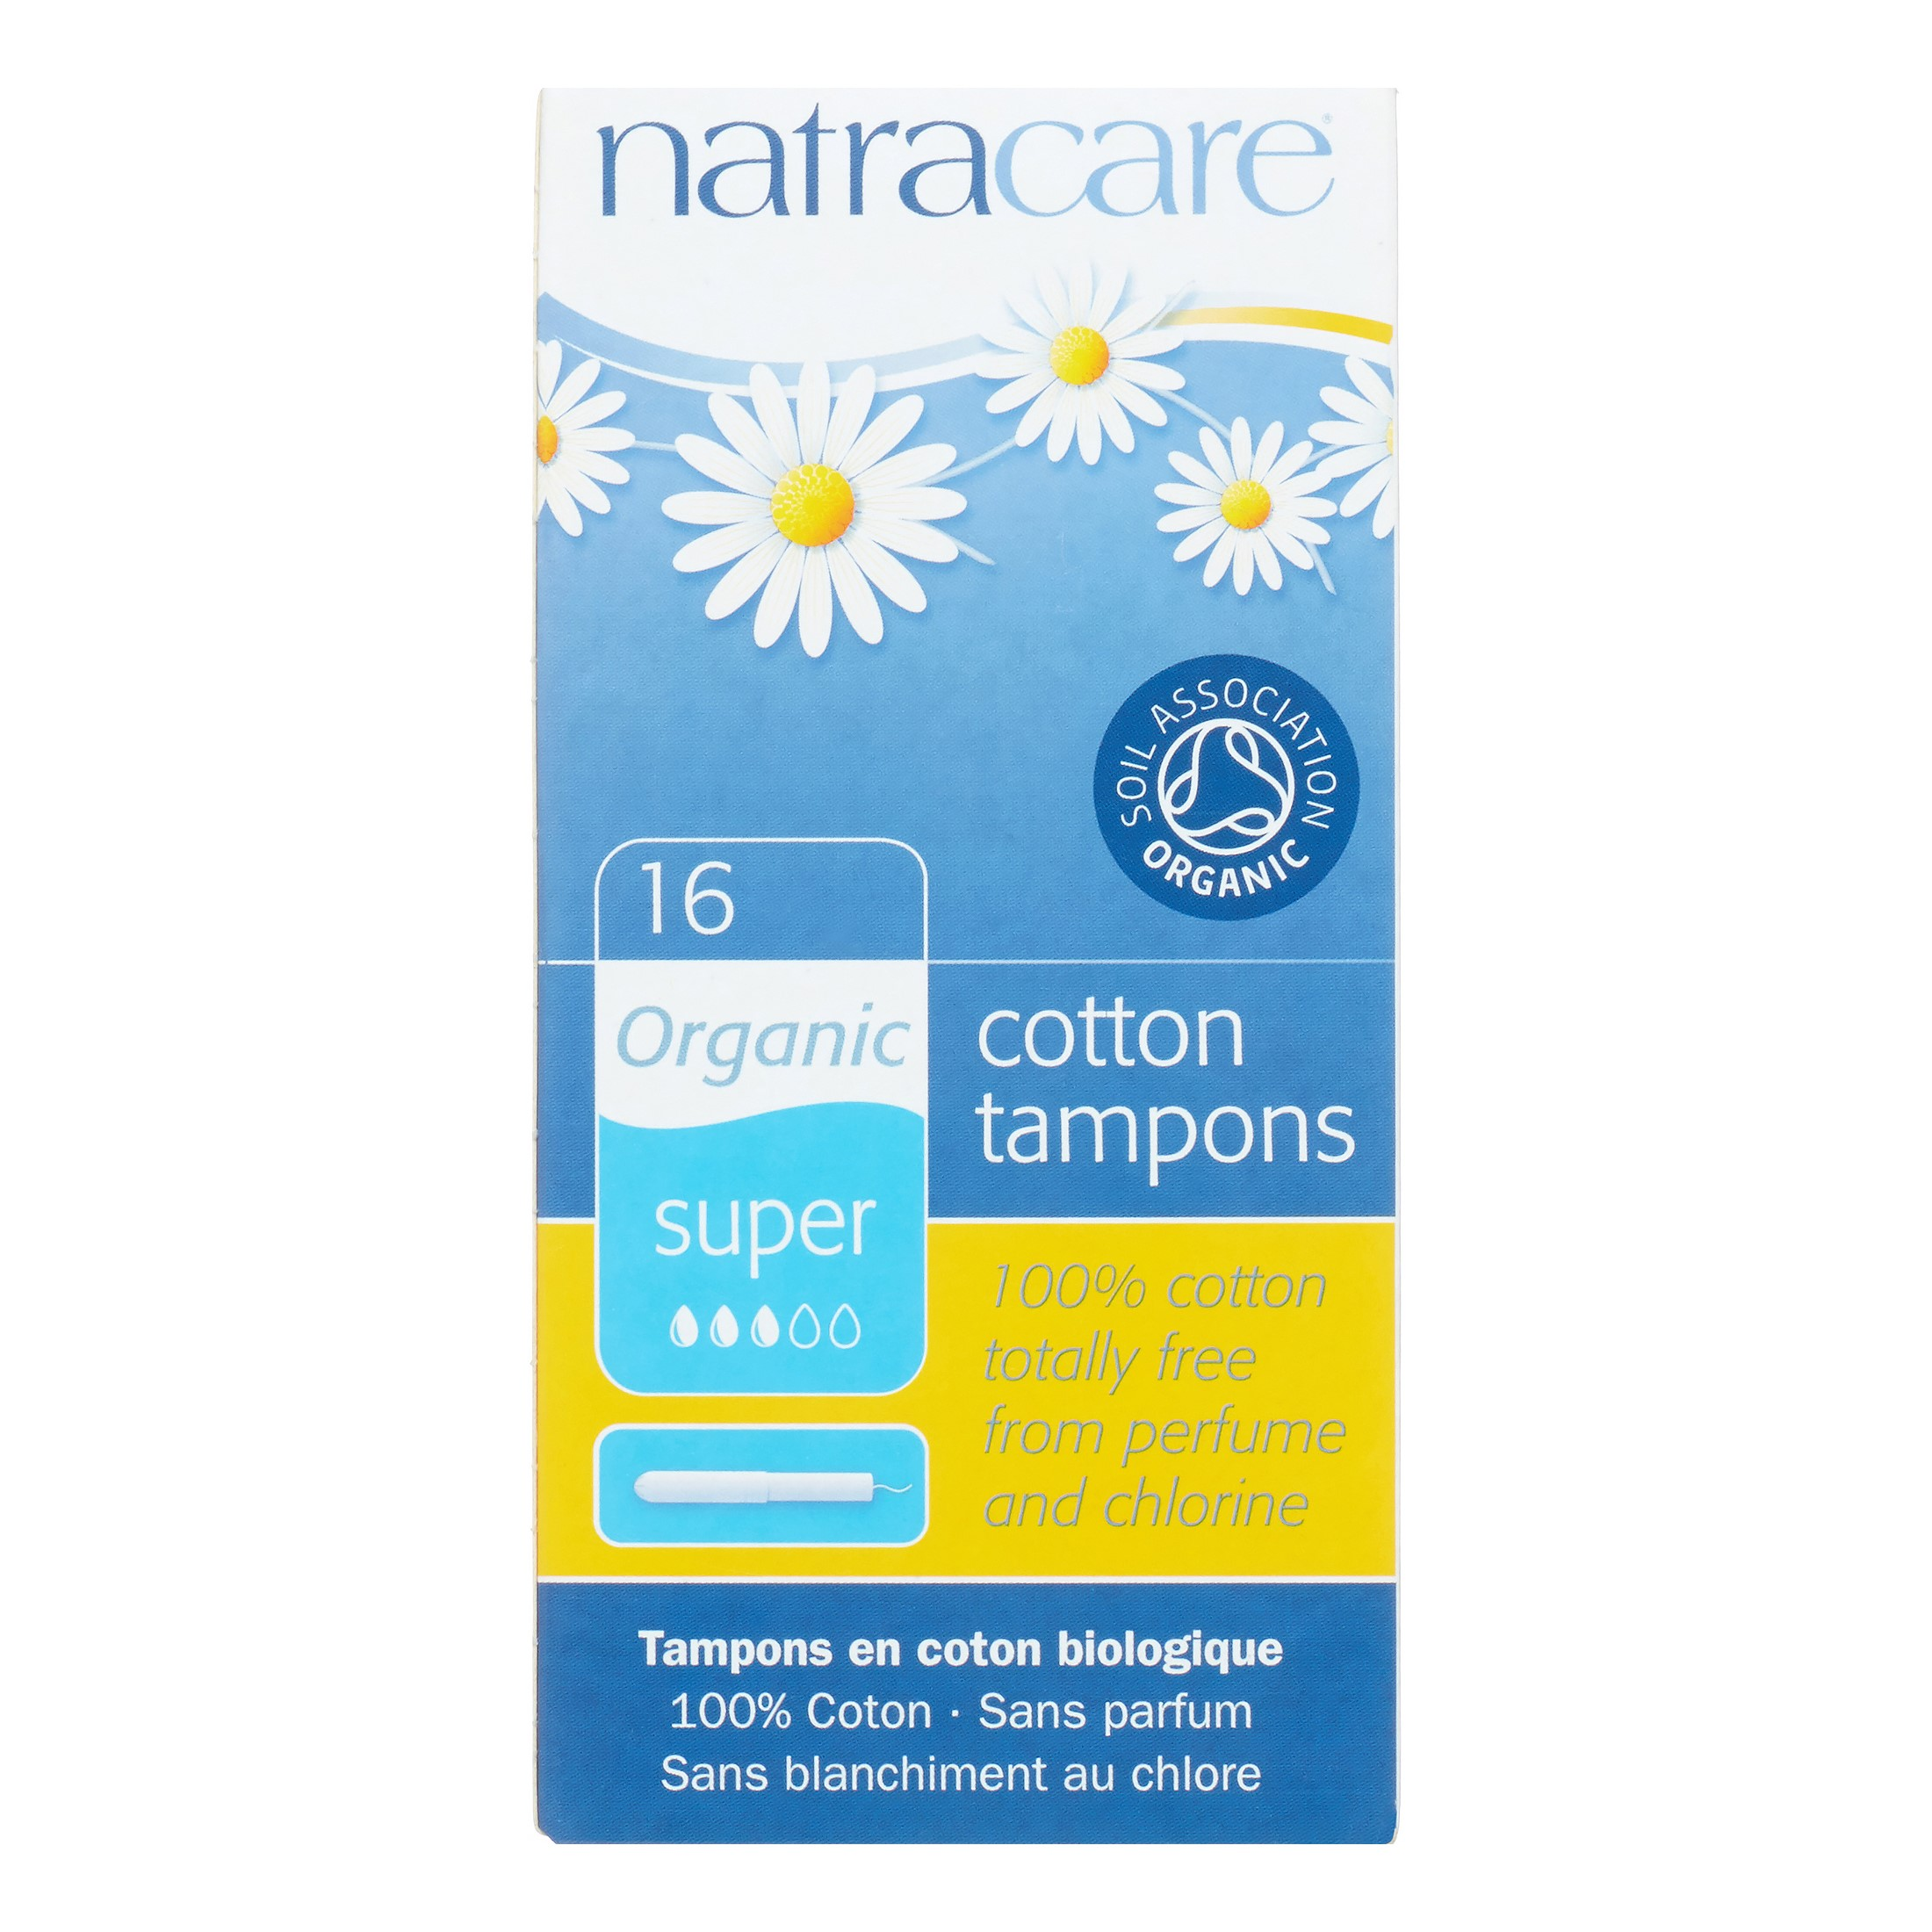 Natracare Natural Organic Cotton Tampons, Super, 16 Ct